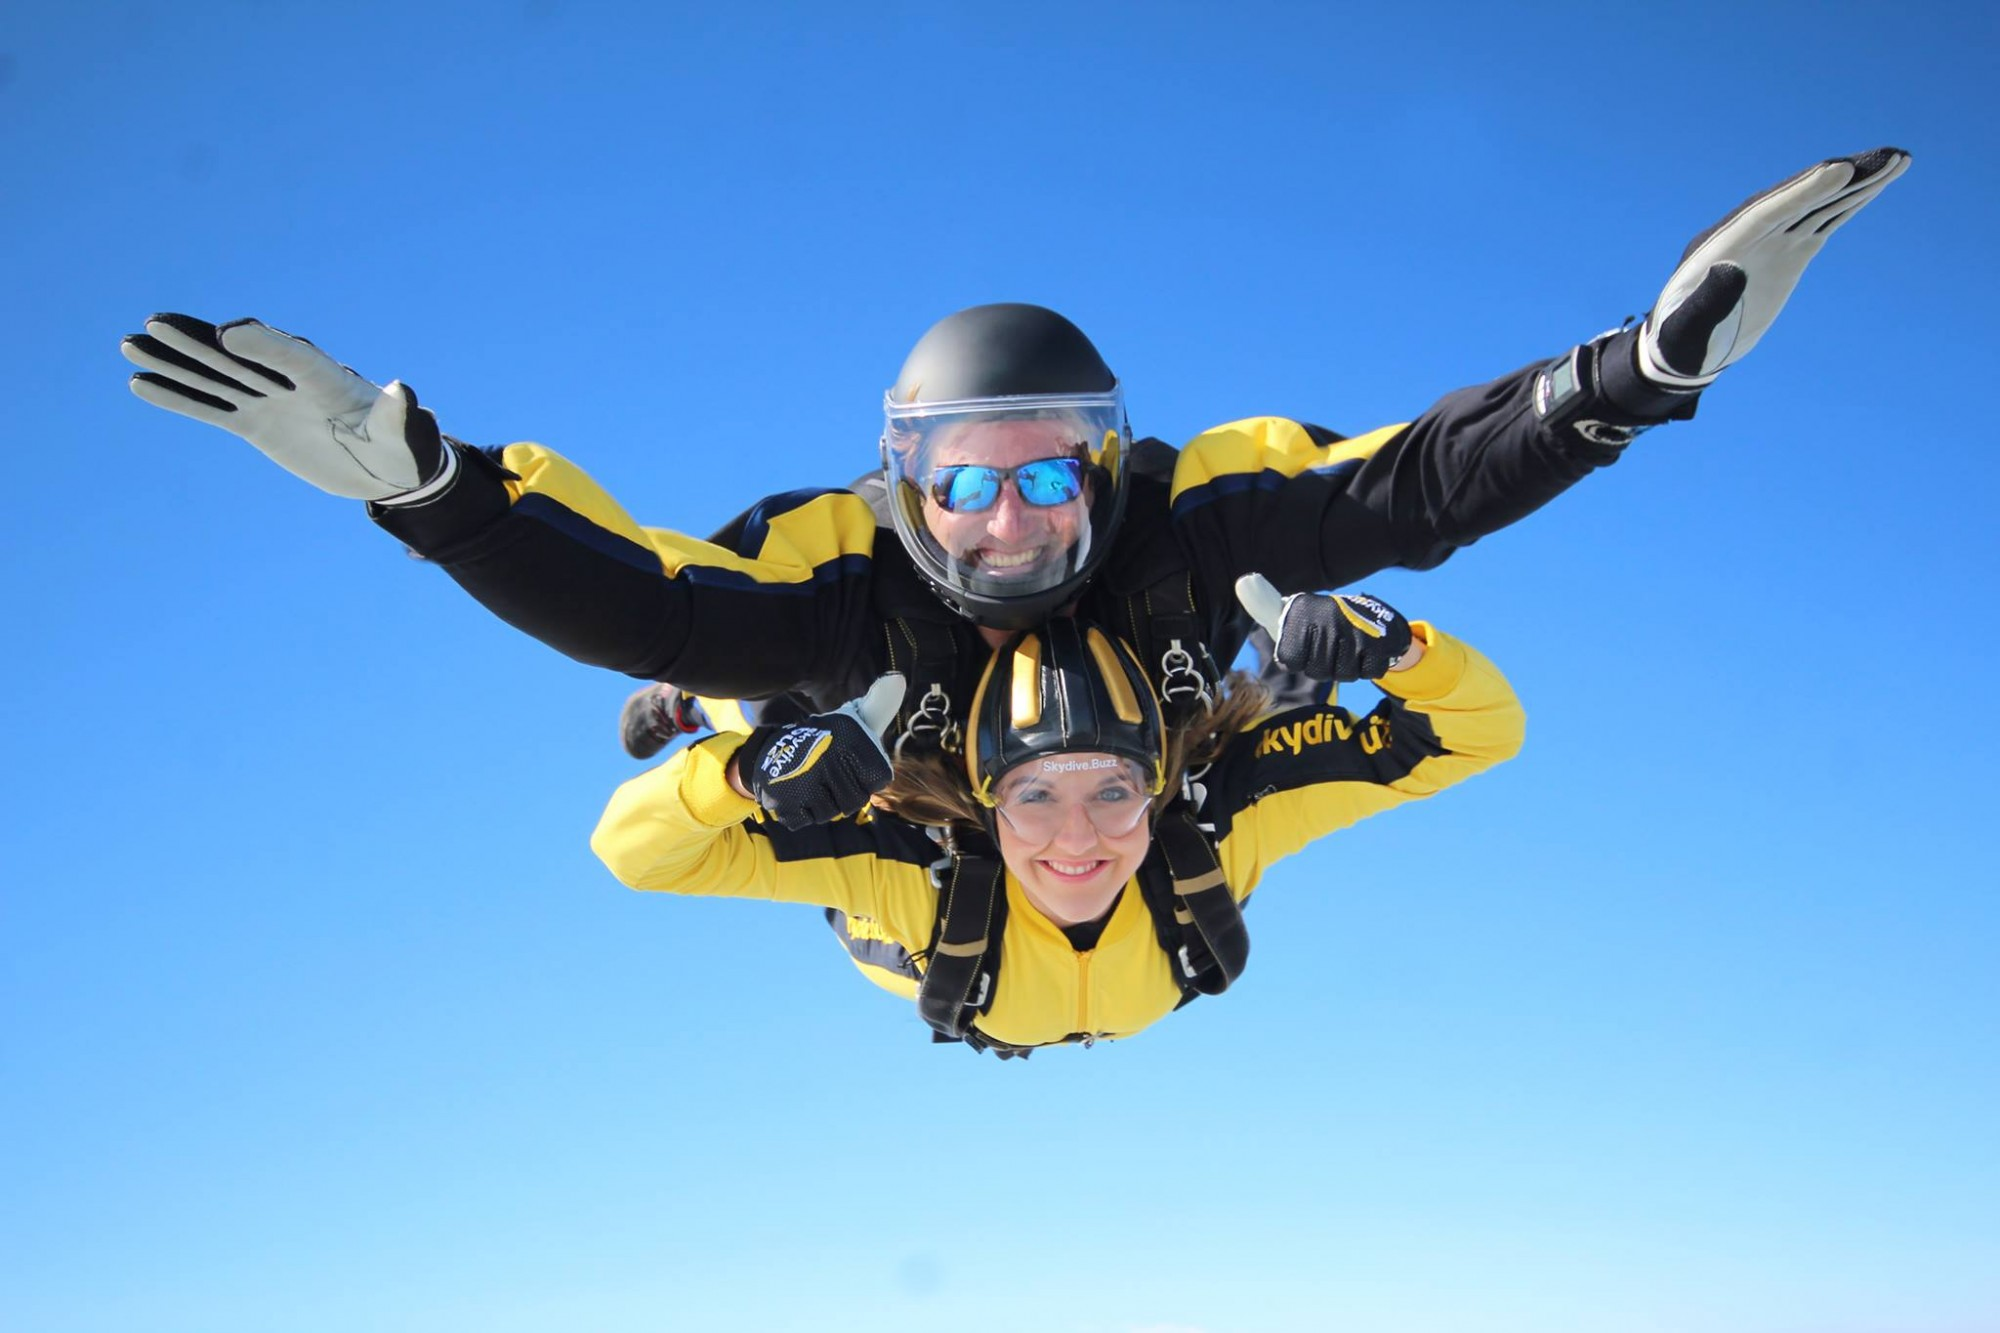 Skydiving to support the DPT Charity